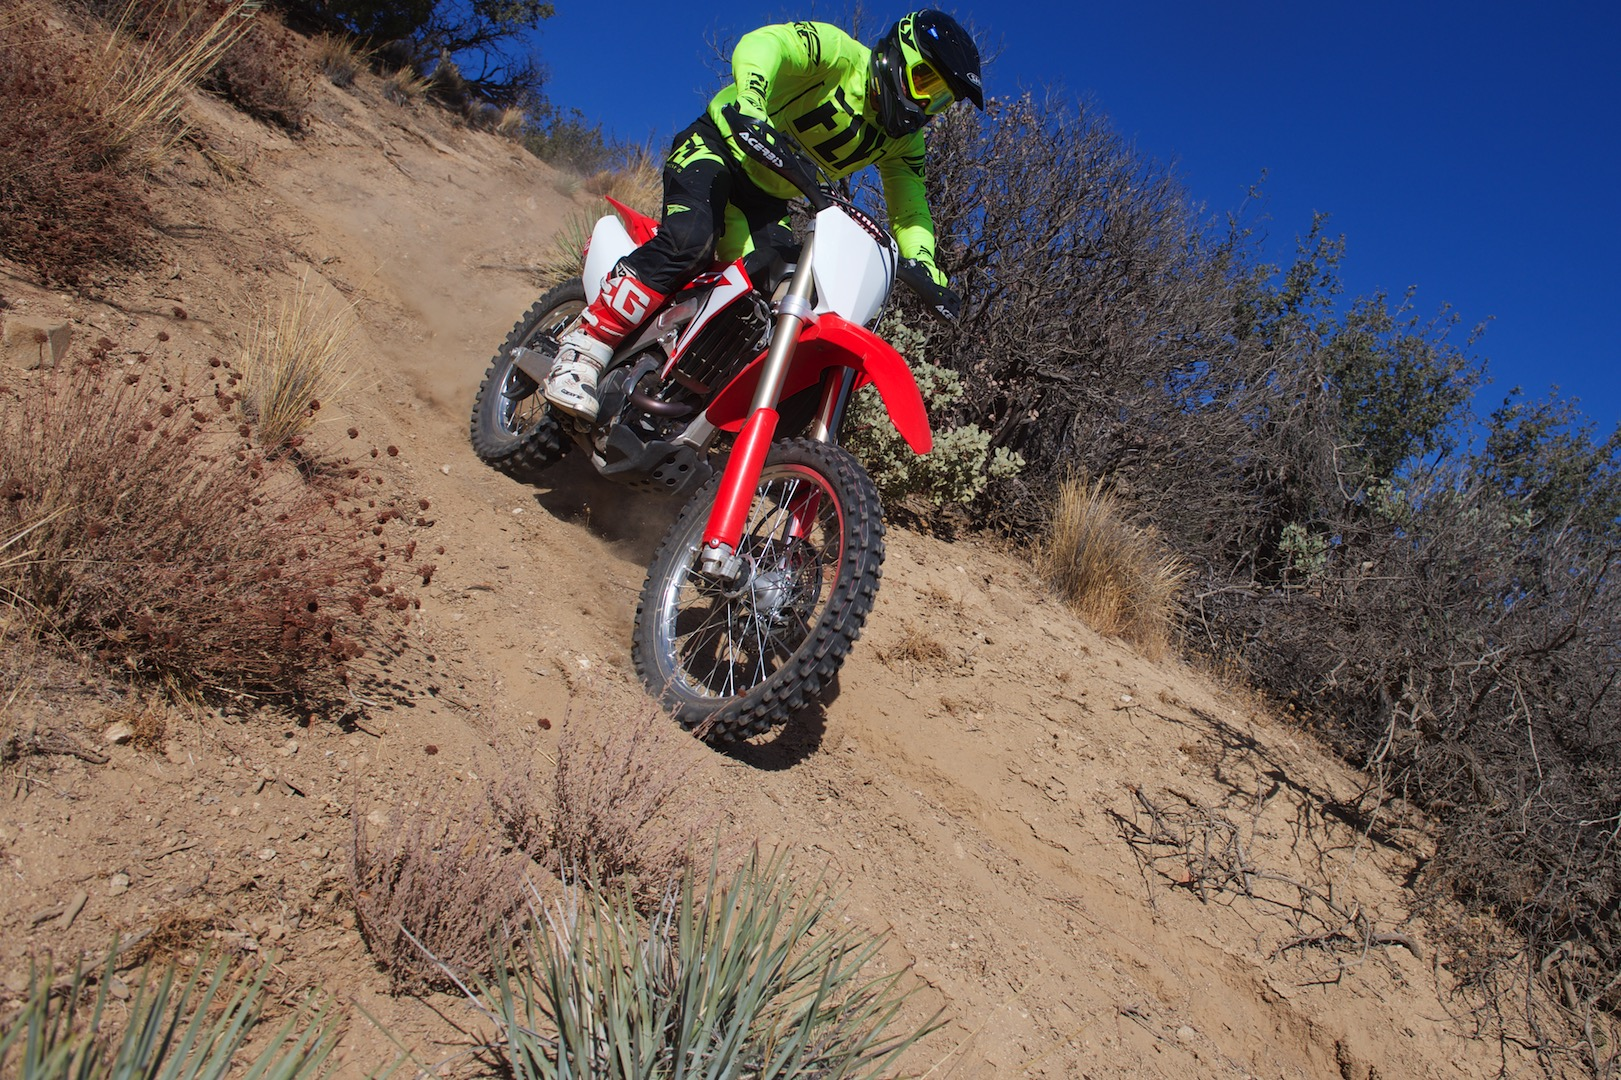 2018 Honda CRF450RX Project Bike tires